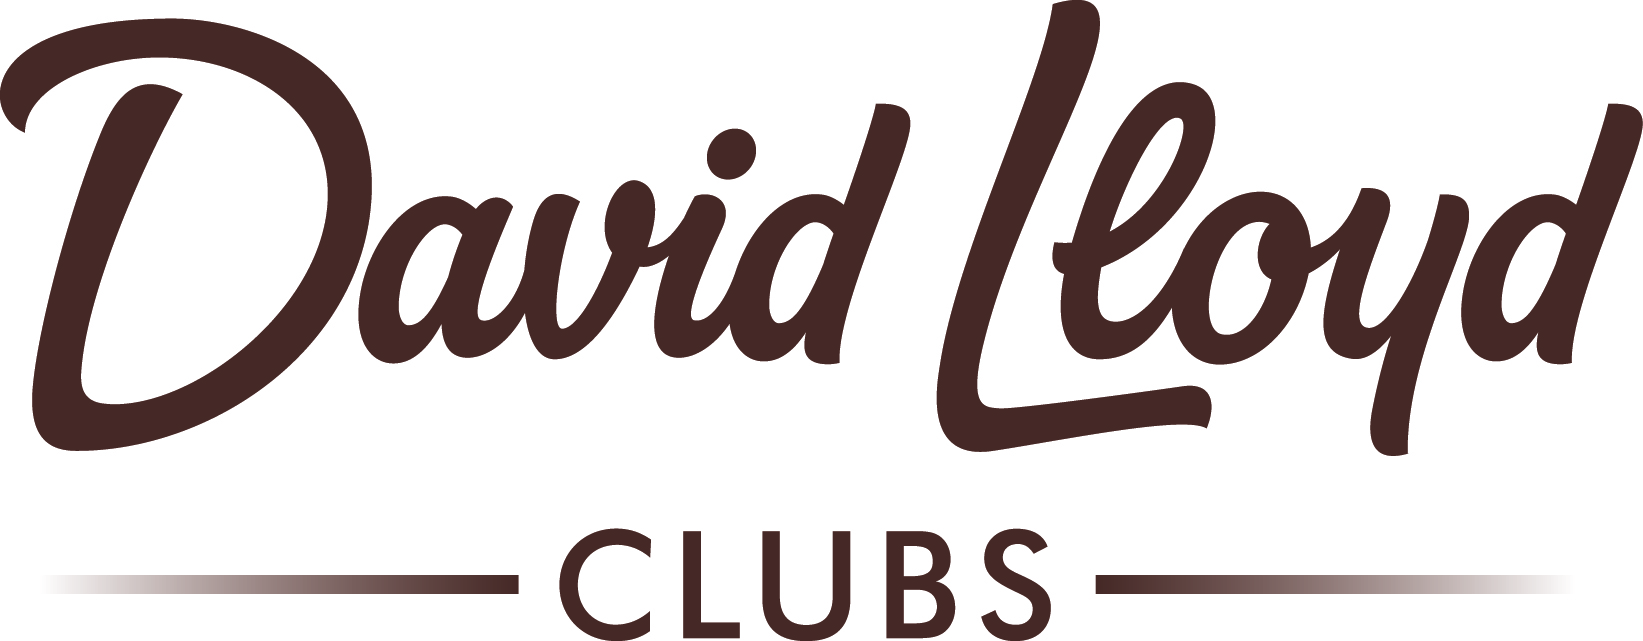 DL Clubs Logo_CMYK_One Colour.jpg